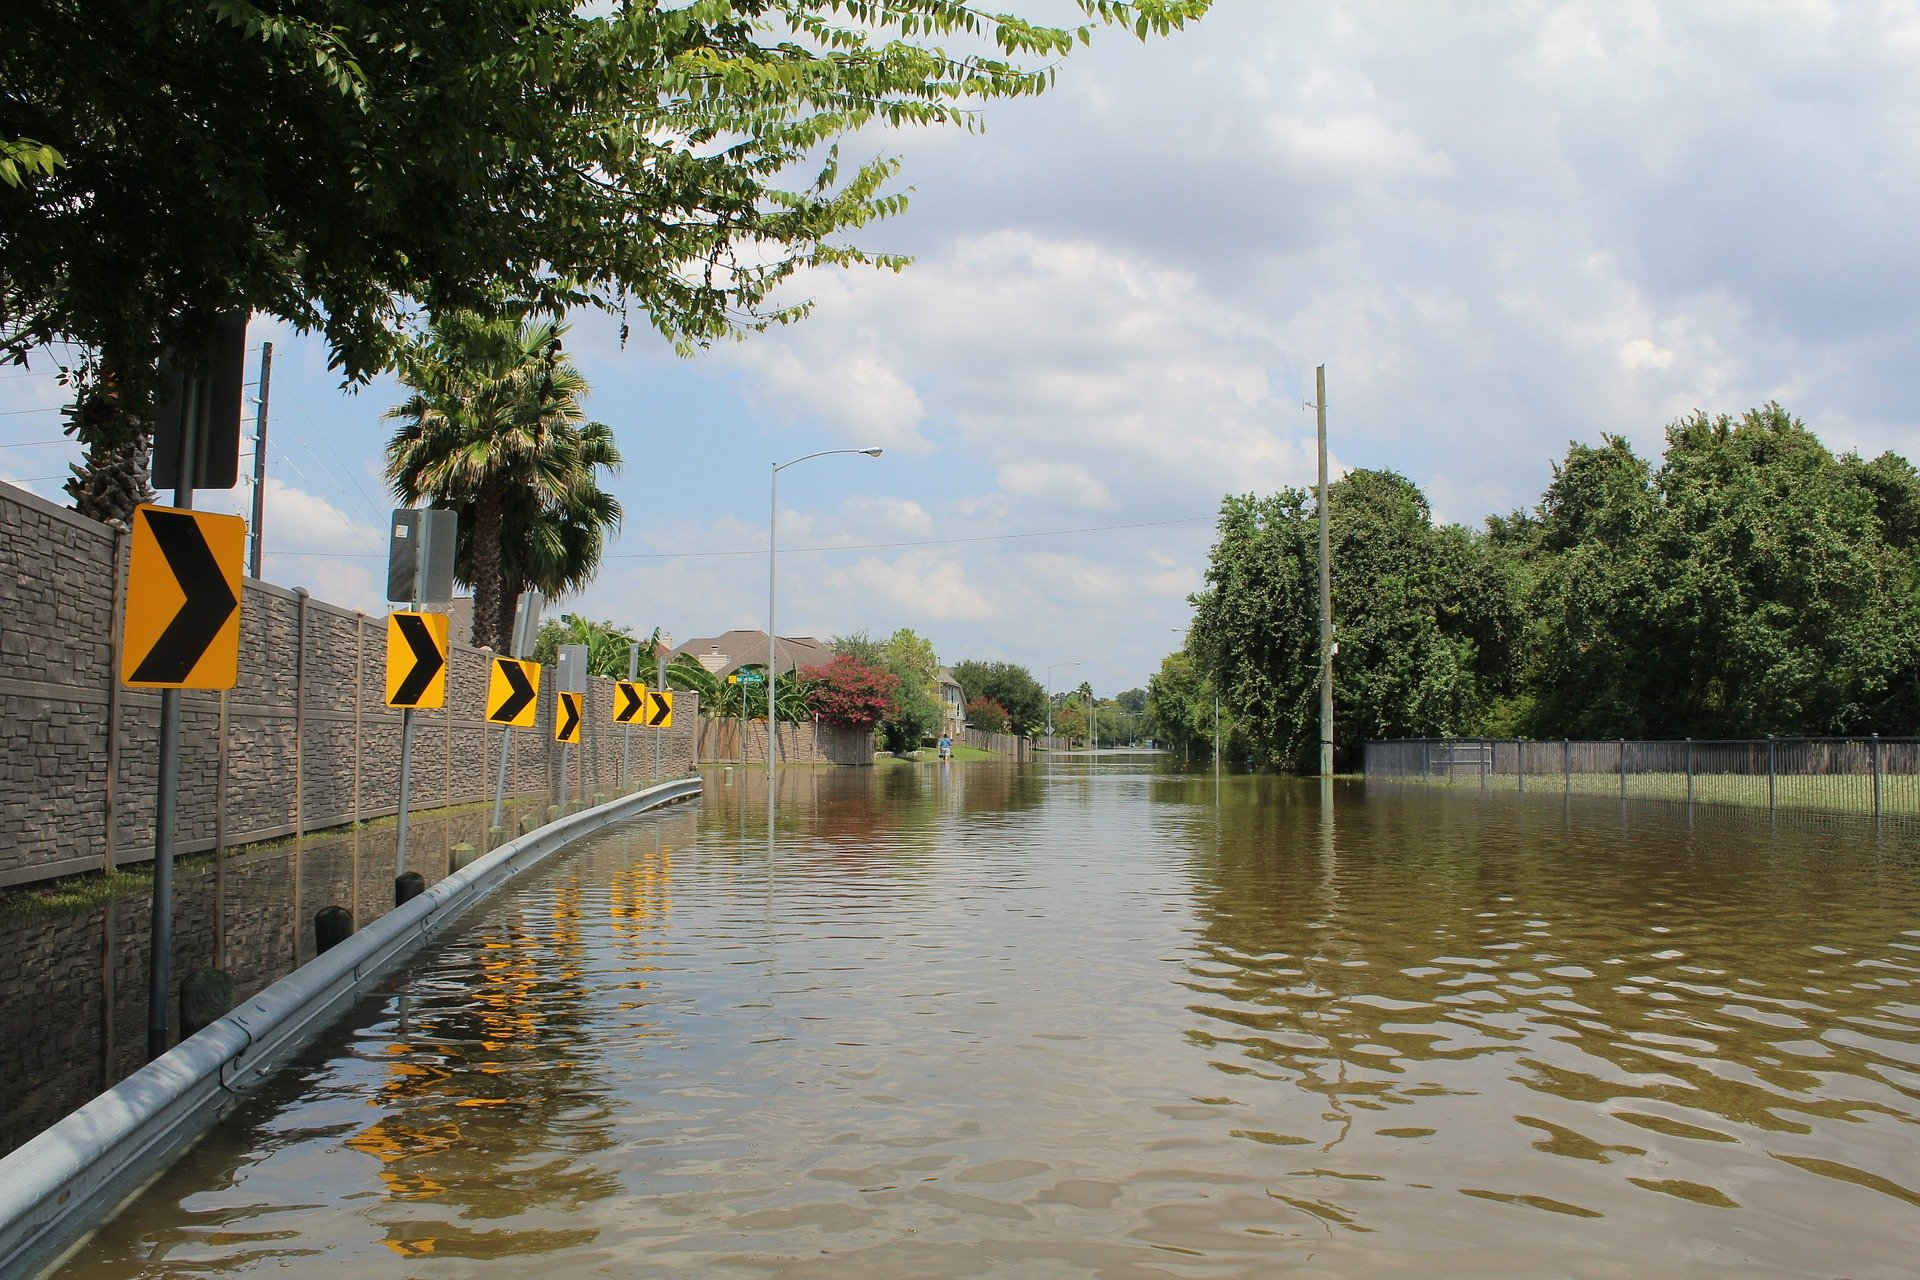 hurricanes: a flooded roadway, the aftermath of hurricane harvey